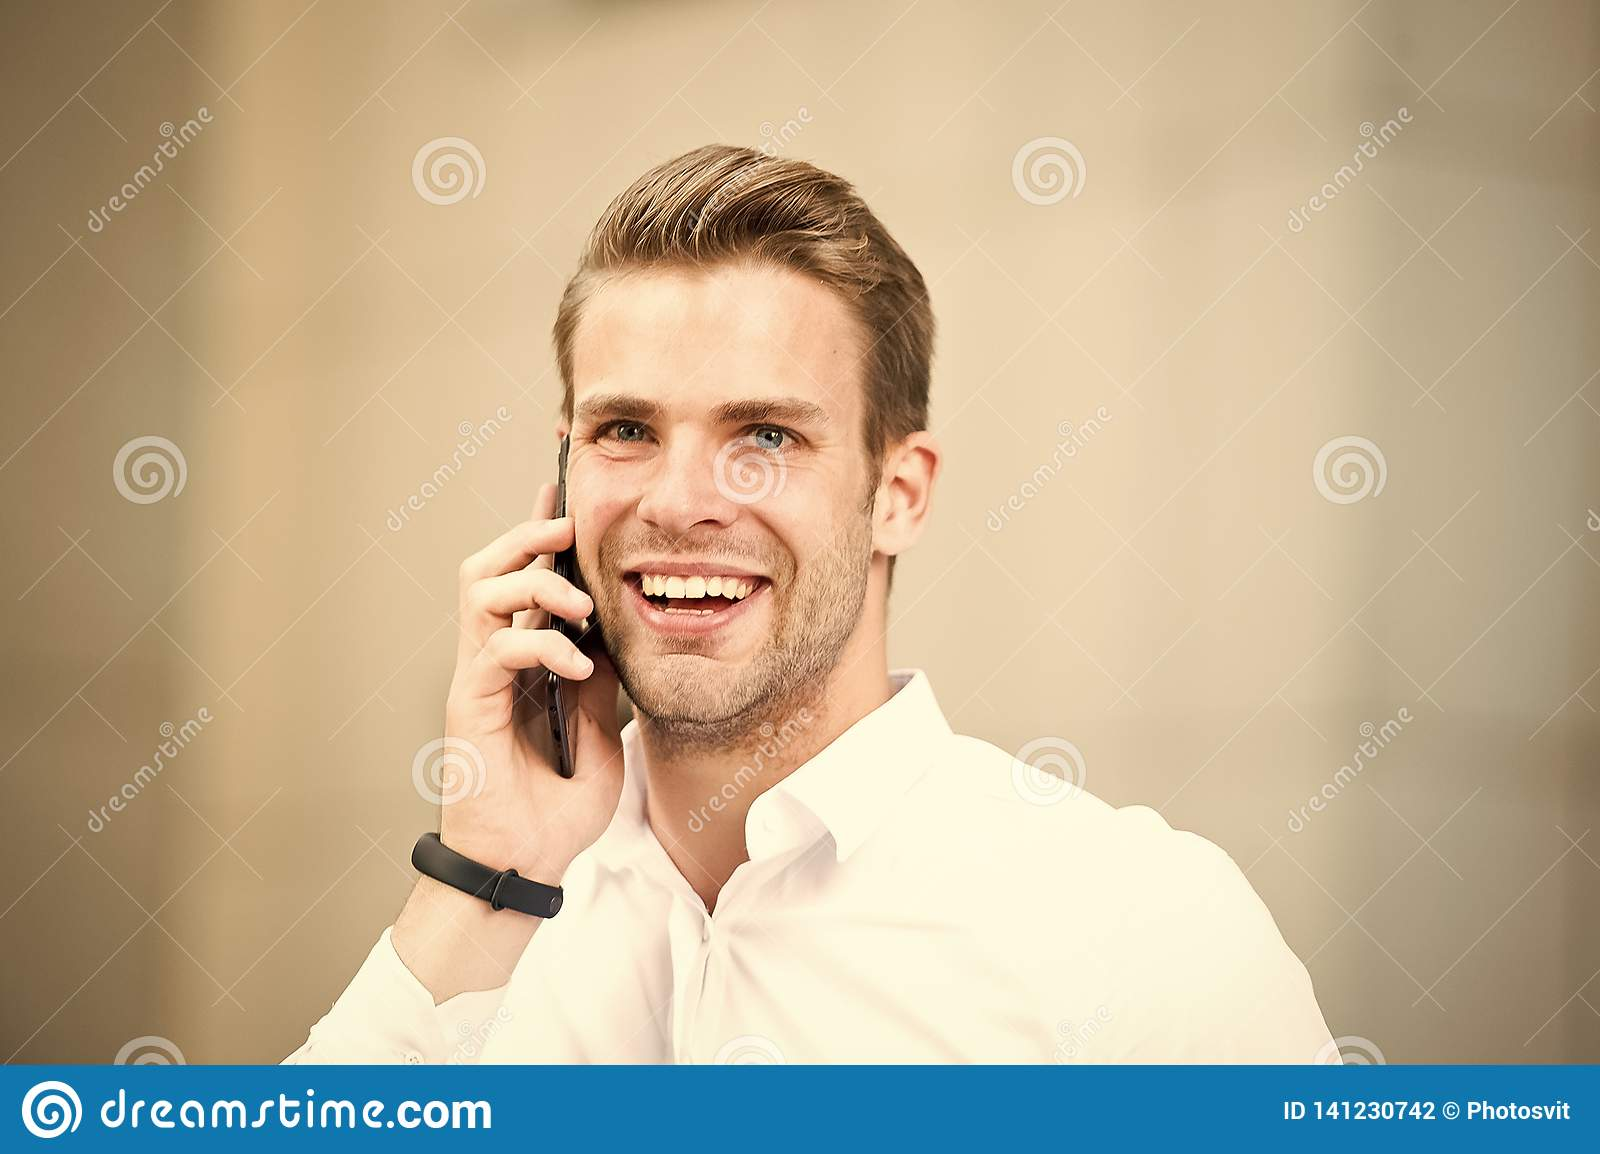 Happy to hear you. Spend few minutes before call to gather yourself. Successful phone conversations tips. Success in